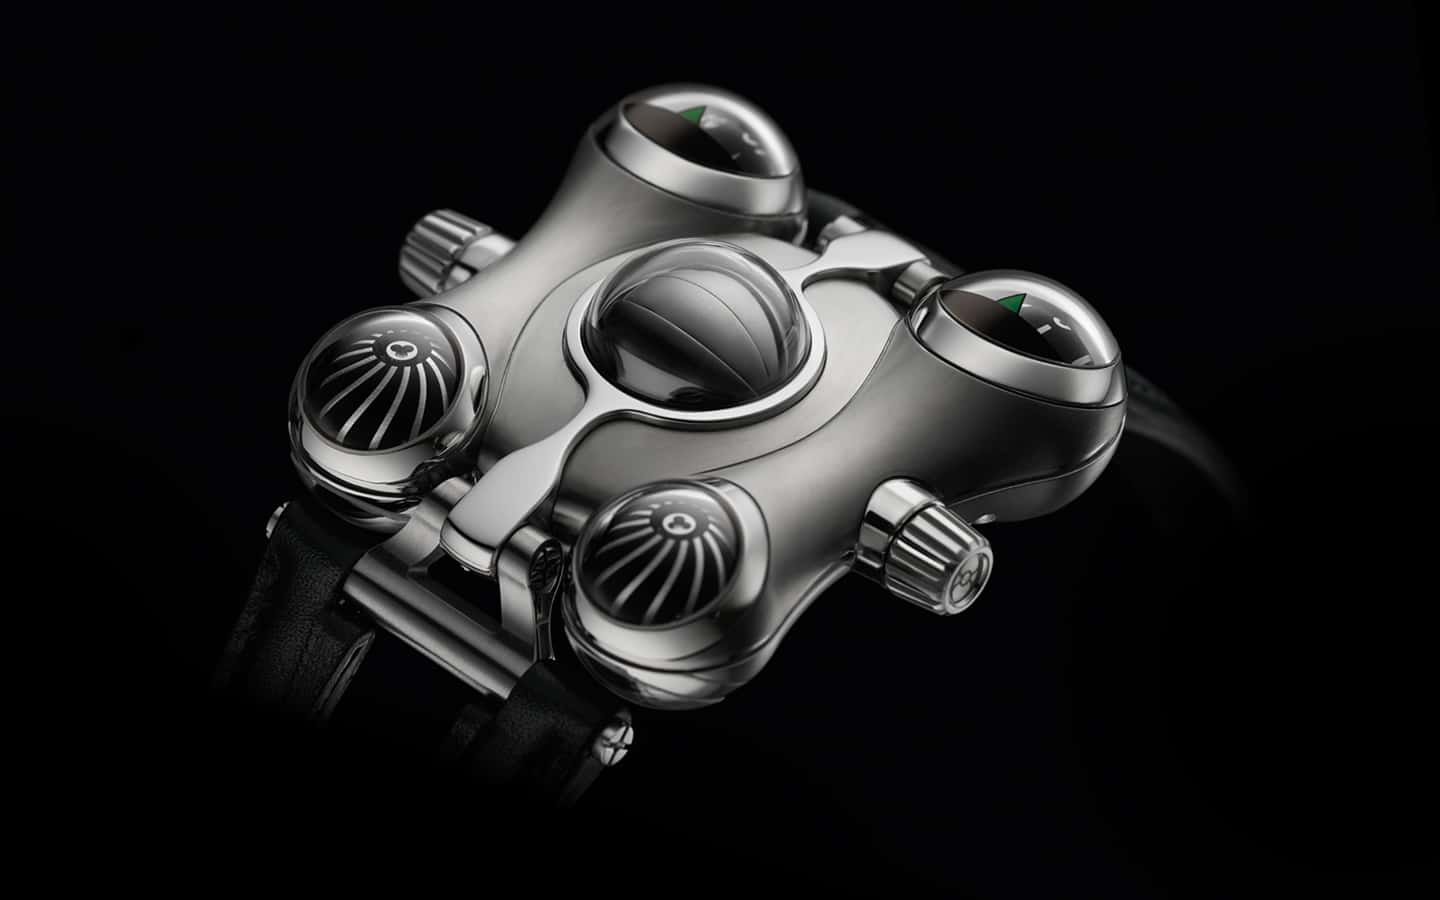 MB&F Horological Machine No.6 (HM6) Space Pirate Watch Retro Futuristic Design